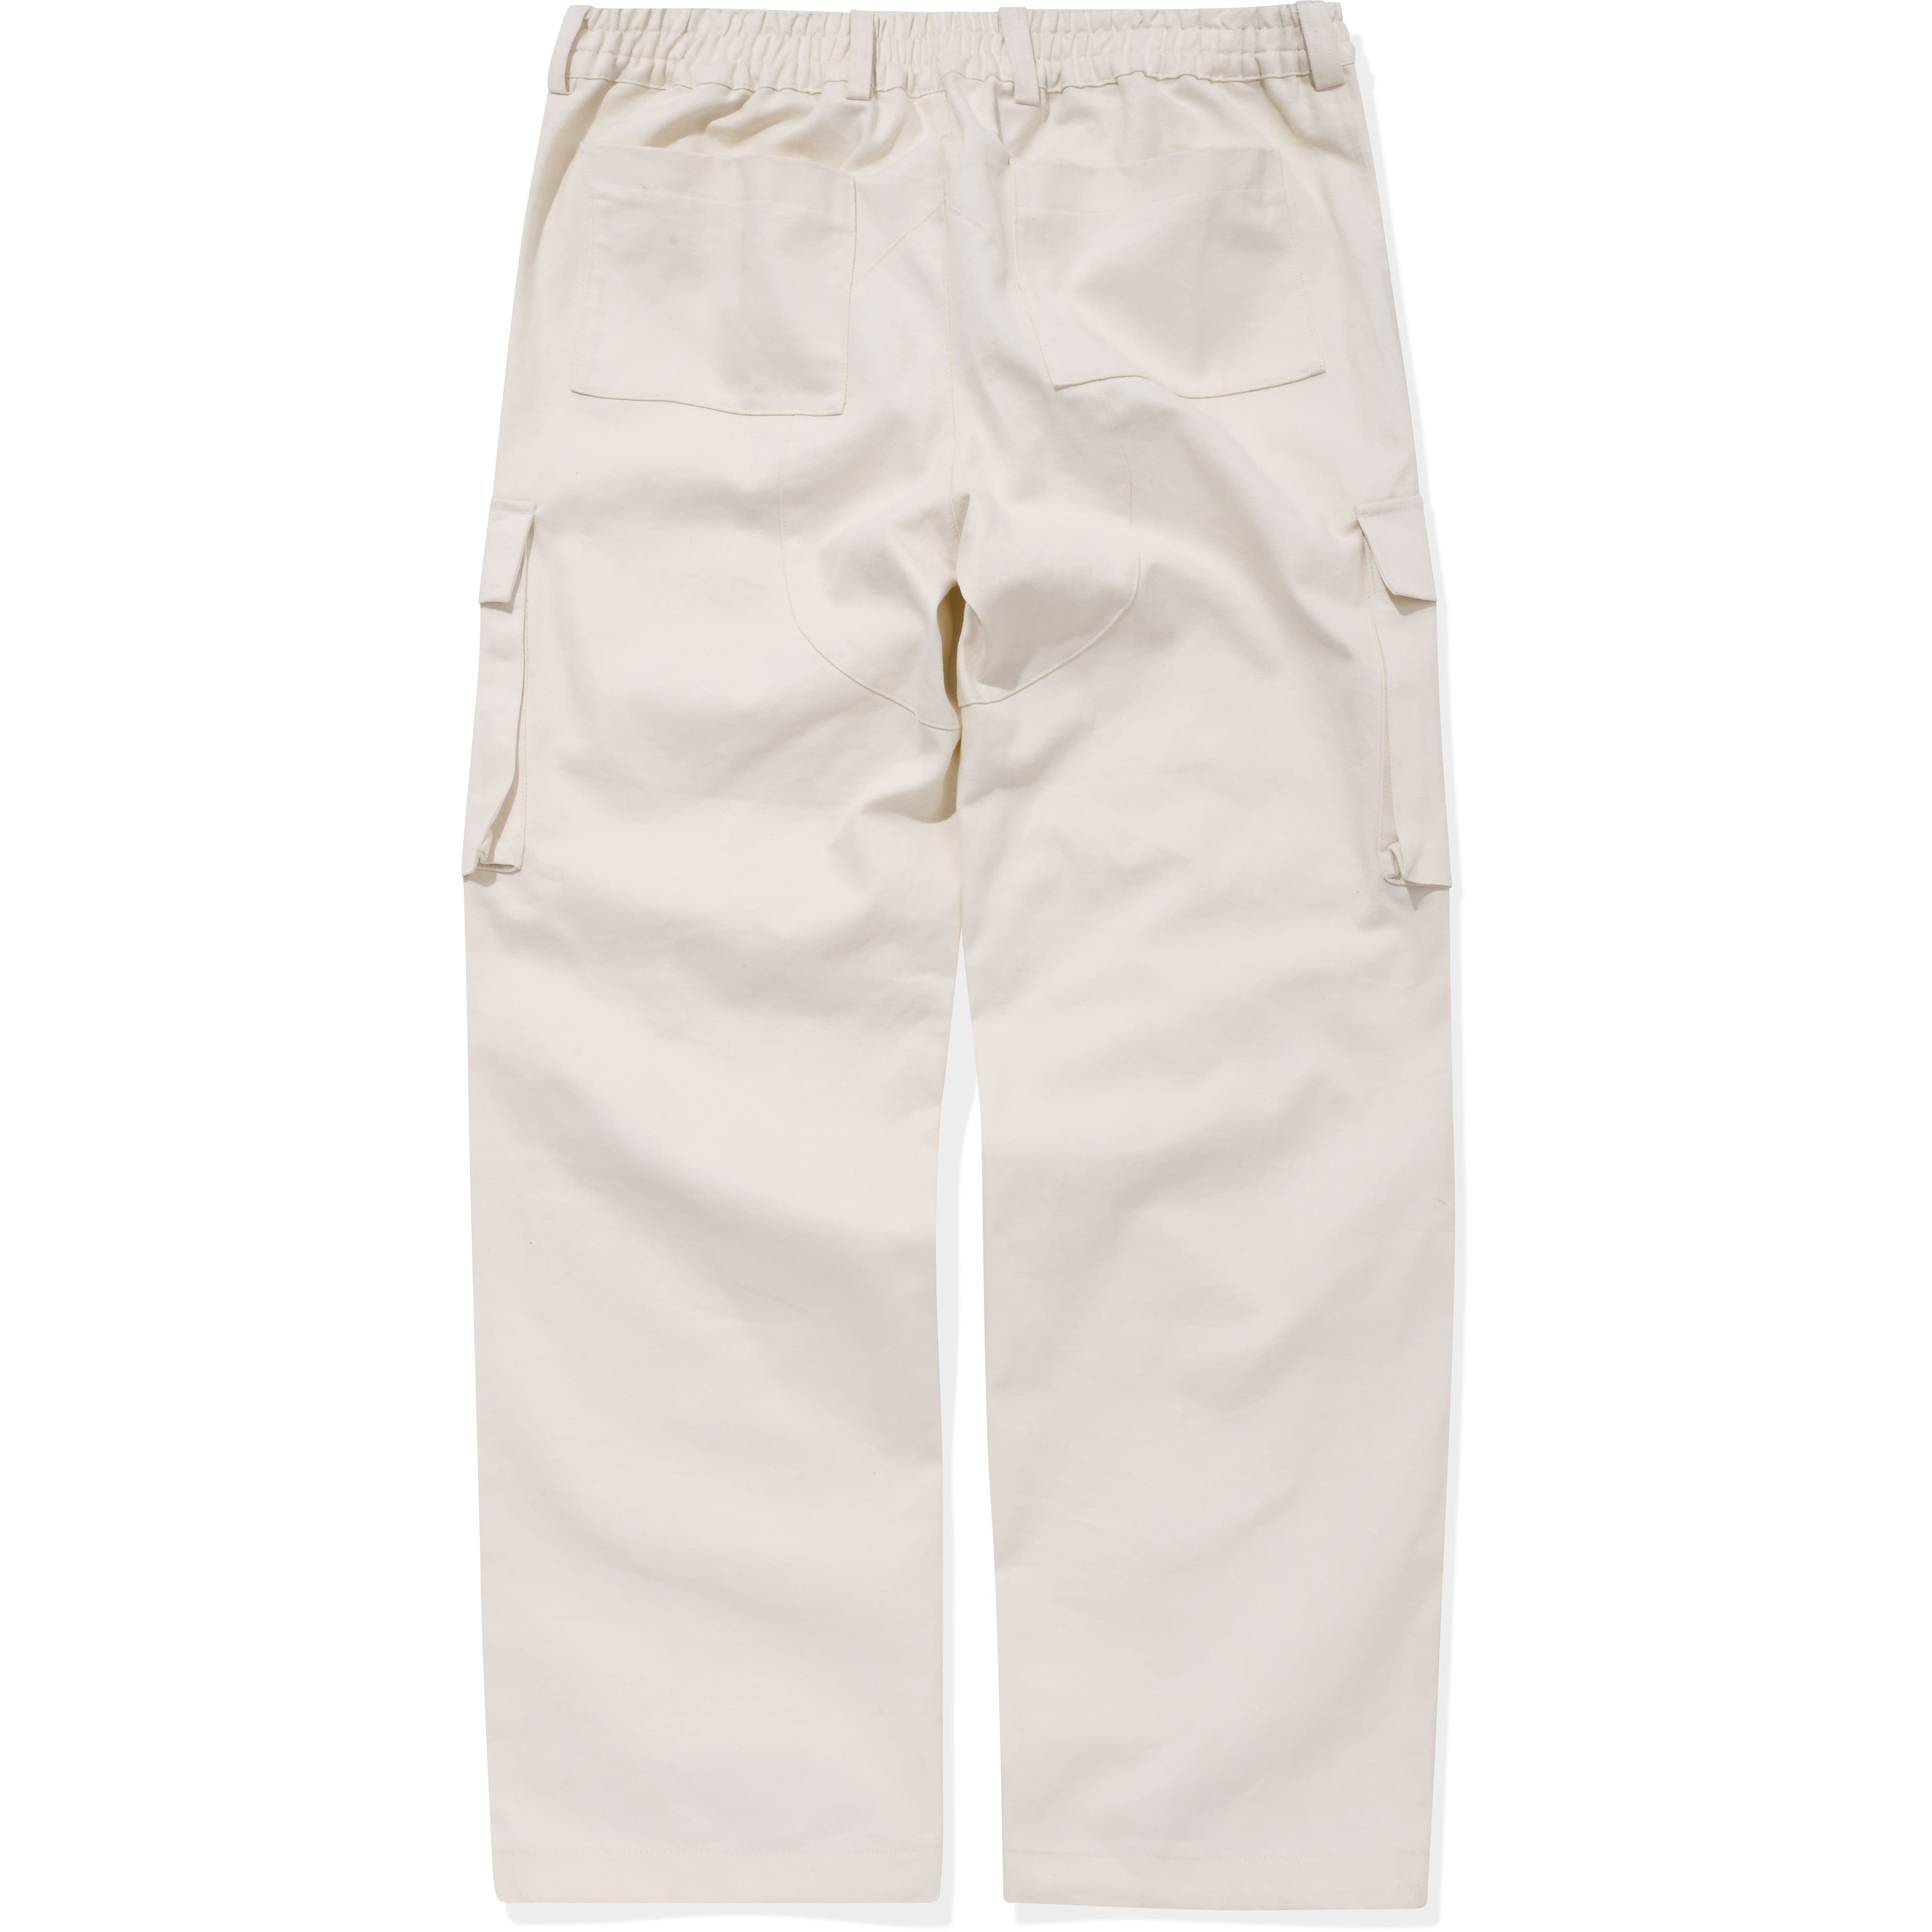 Cargo Pocket Pants Cream,NOT4NERD